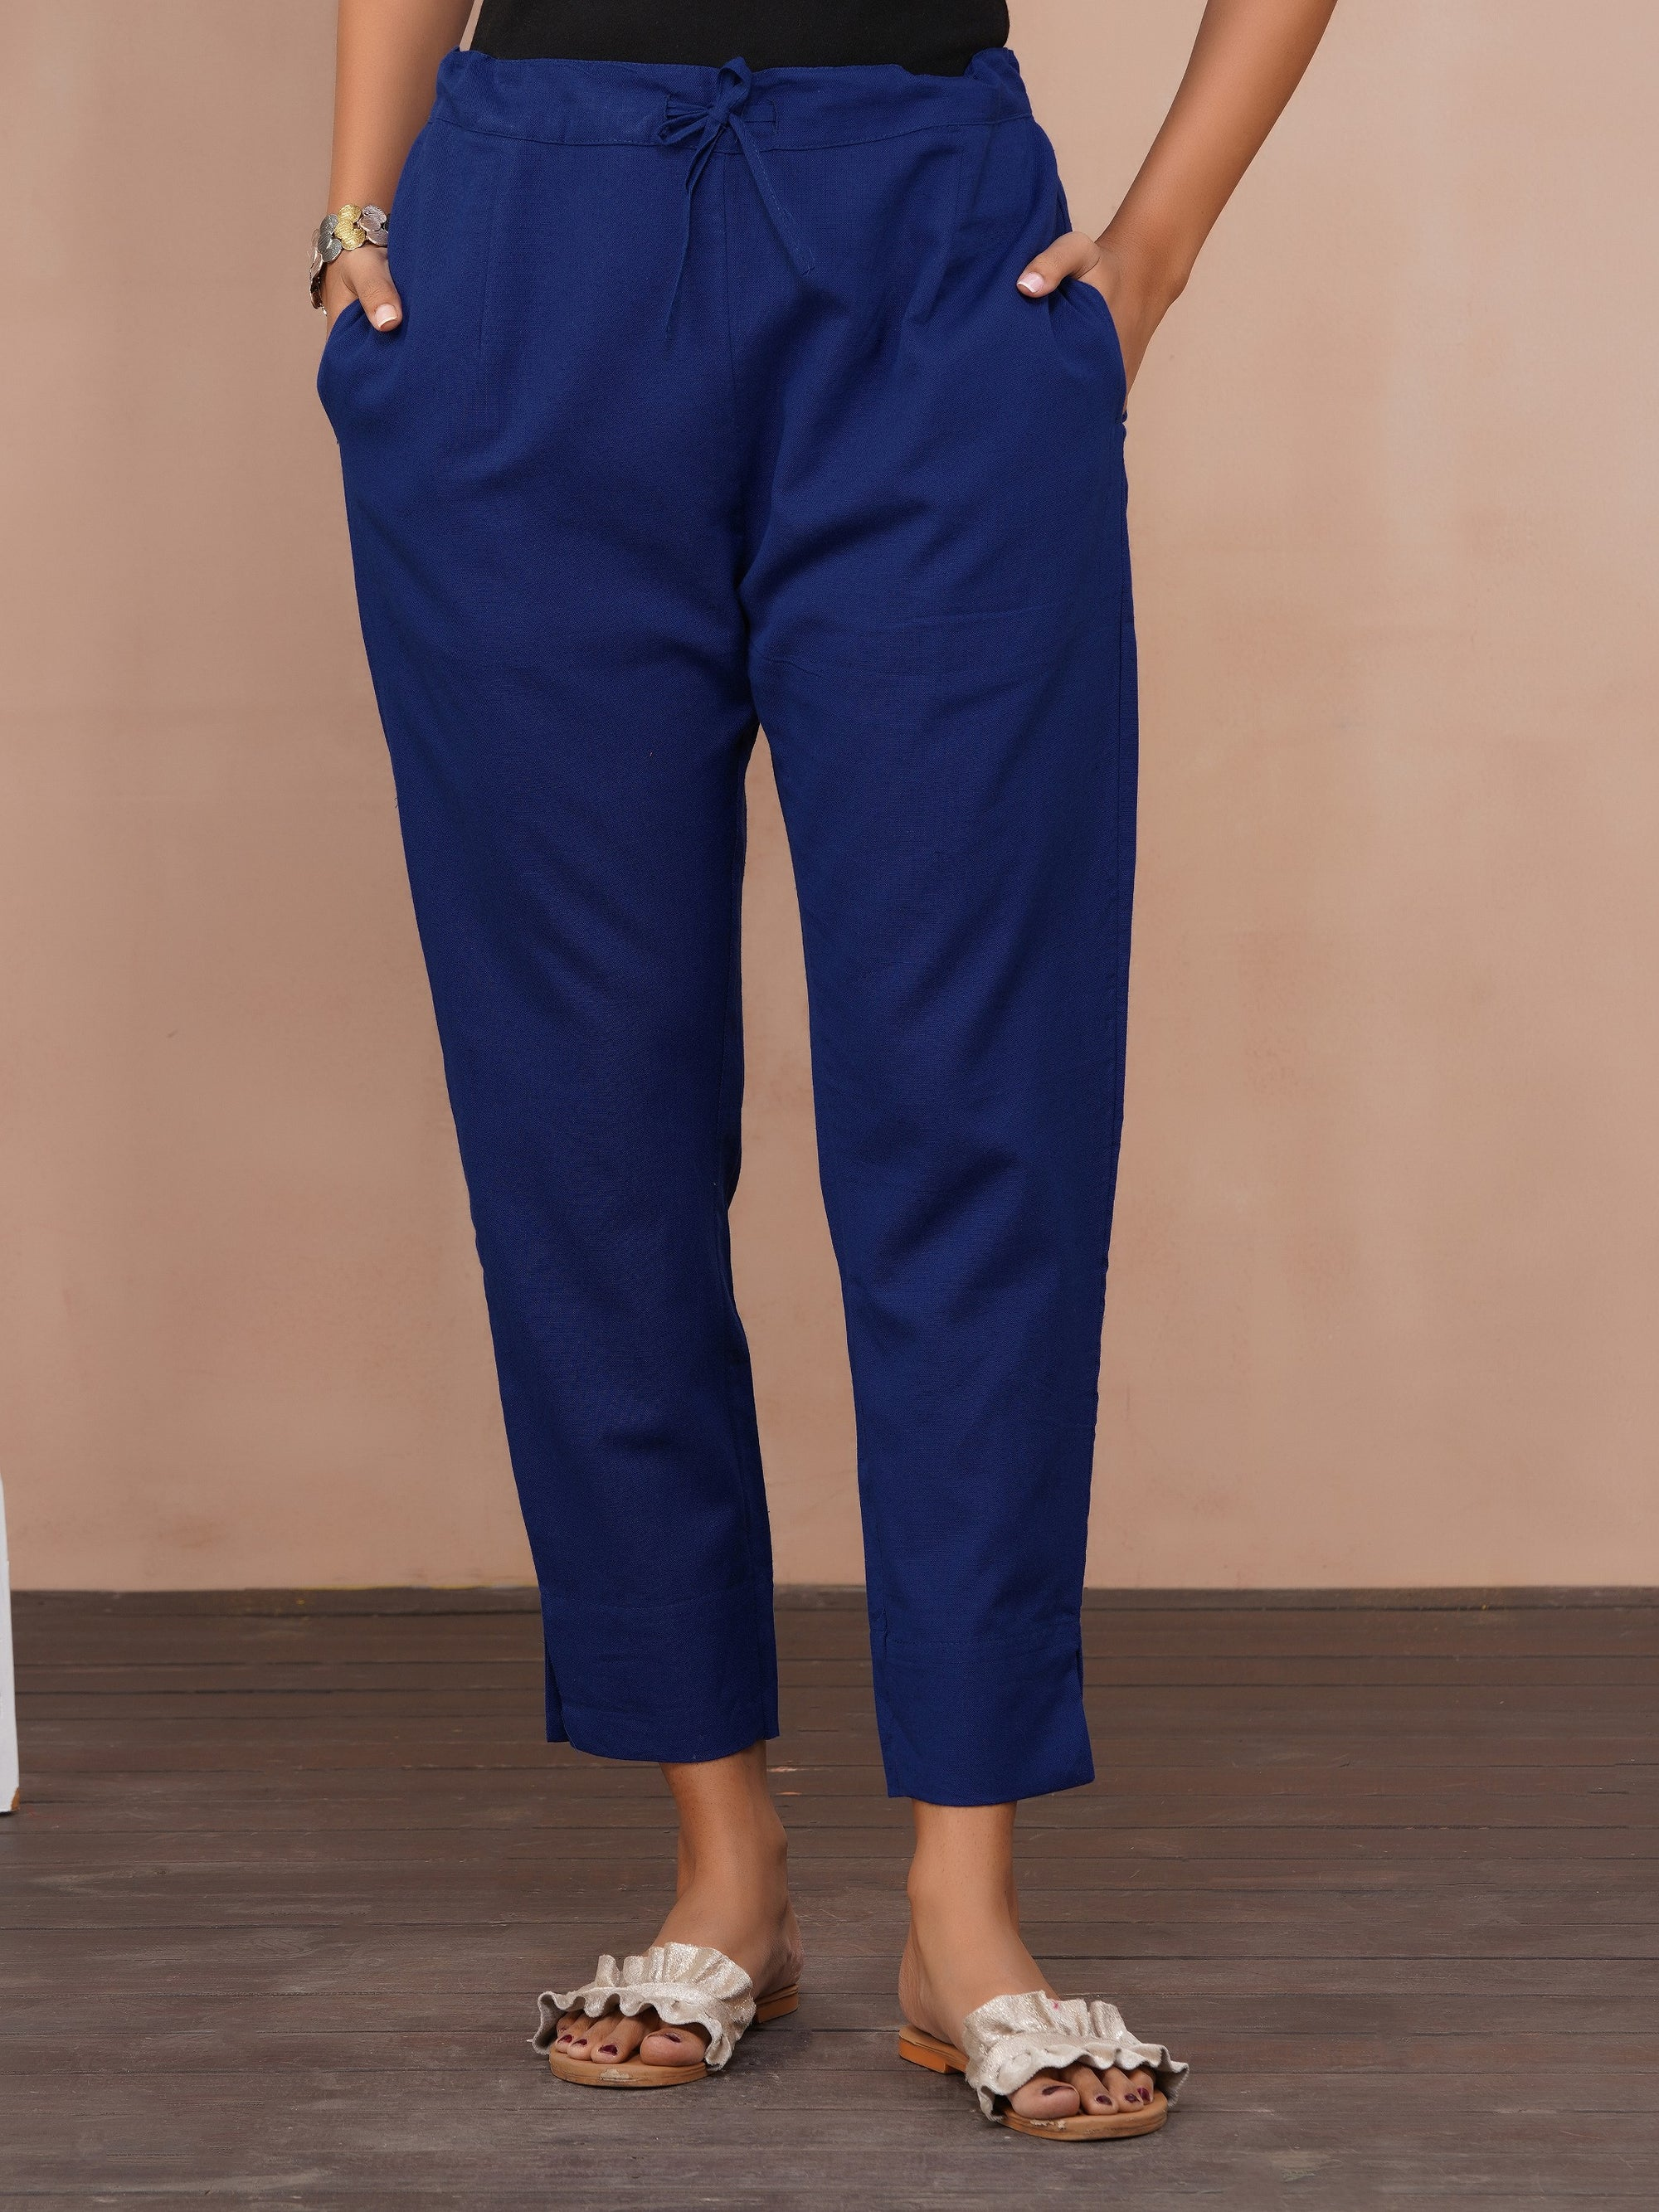 Solid Handloom Straight Fit Pant – Royal Blue